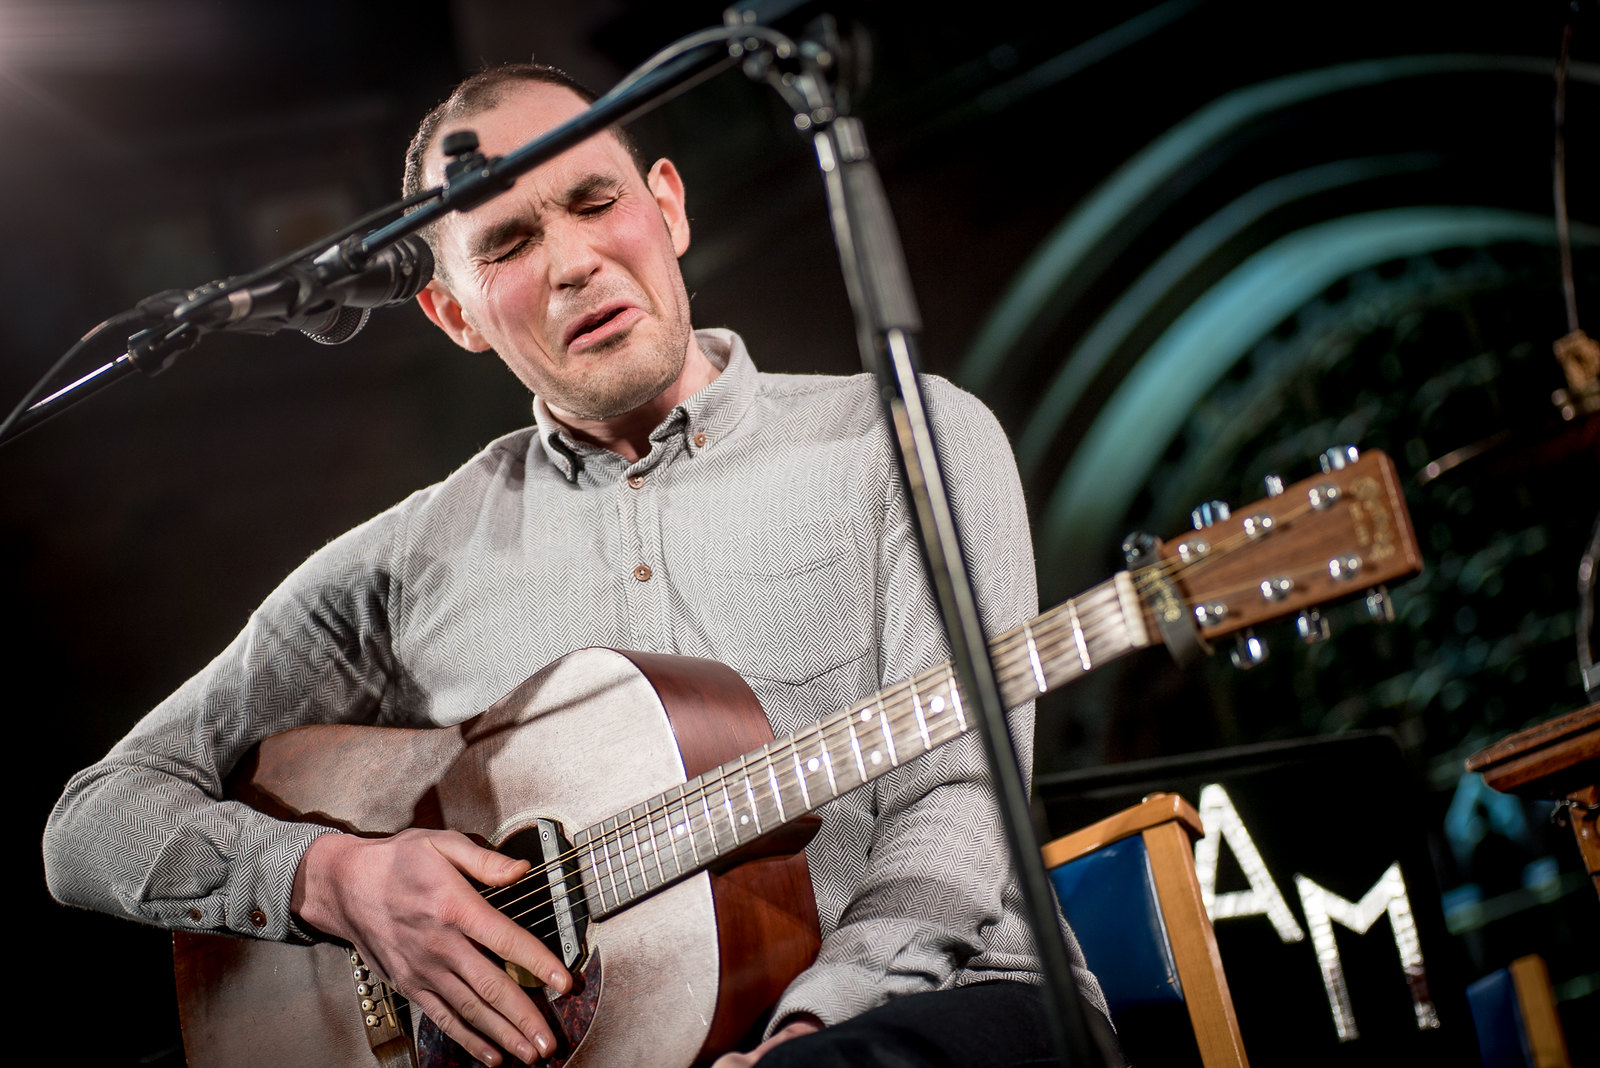 Daylight Music 217: Rory McVicar